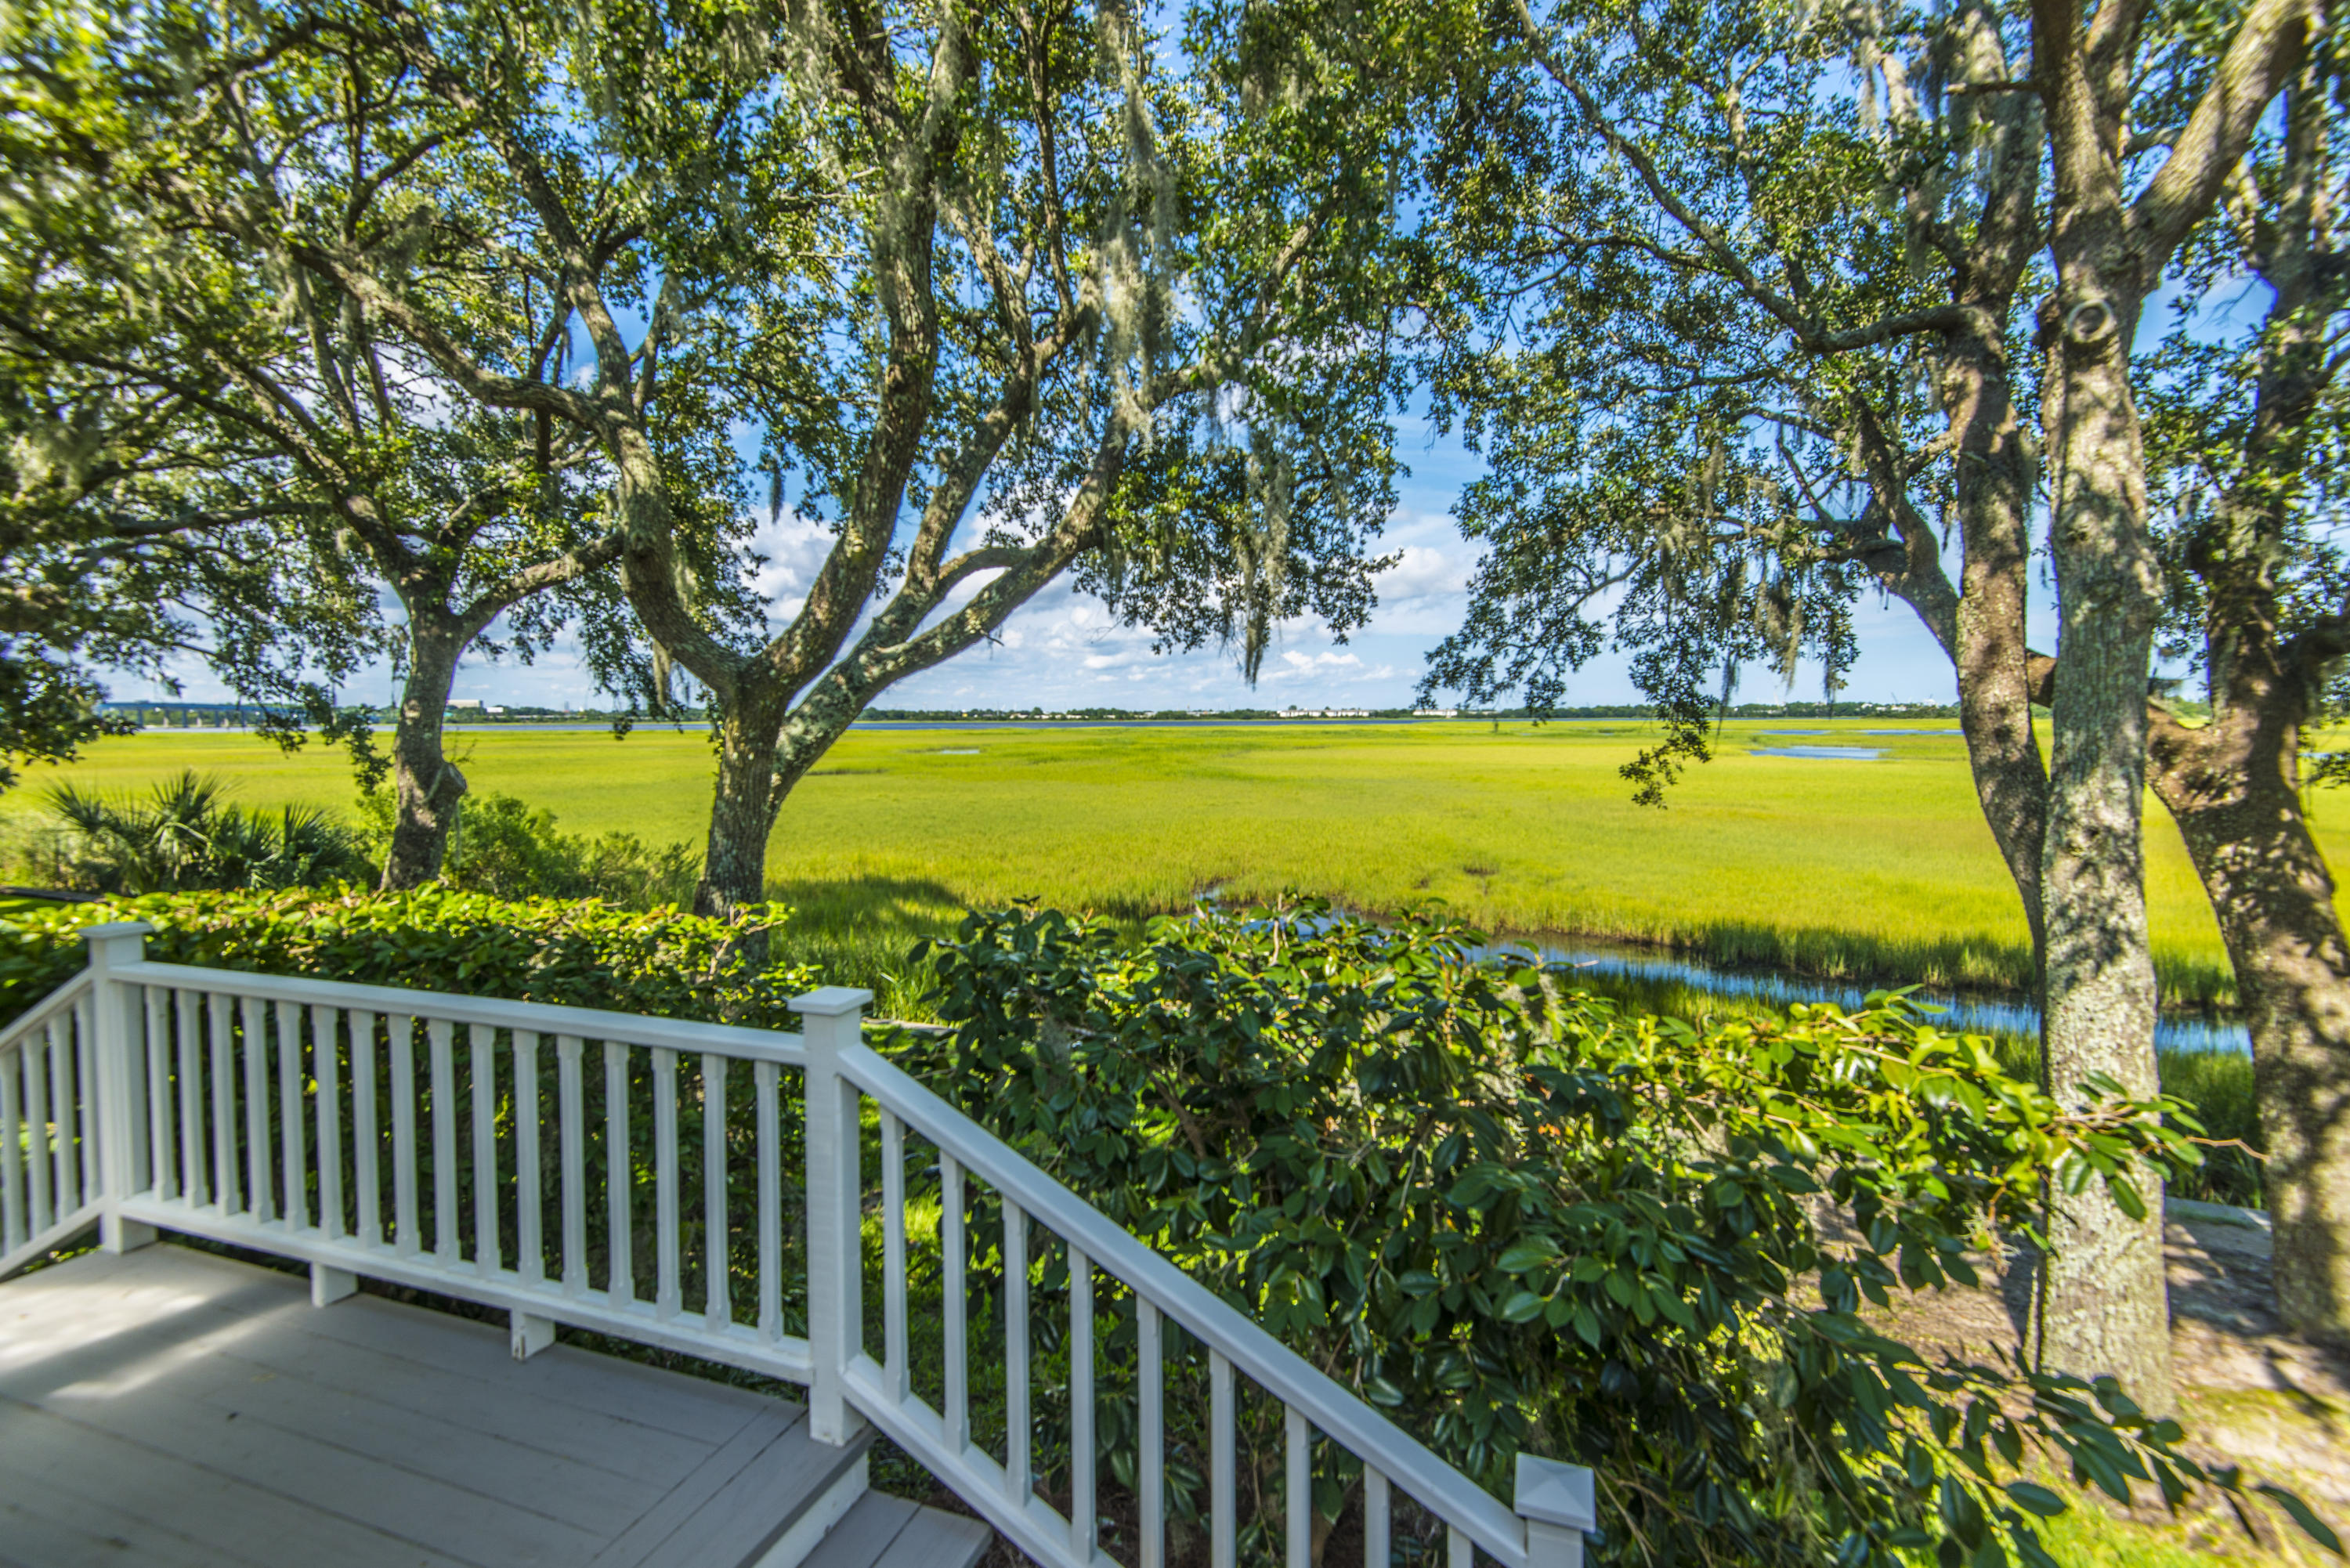 Parkshore III Homes For Sale - 11 Charing Cross, Charleston, SC - 15